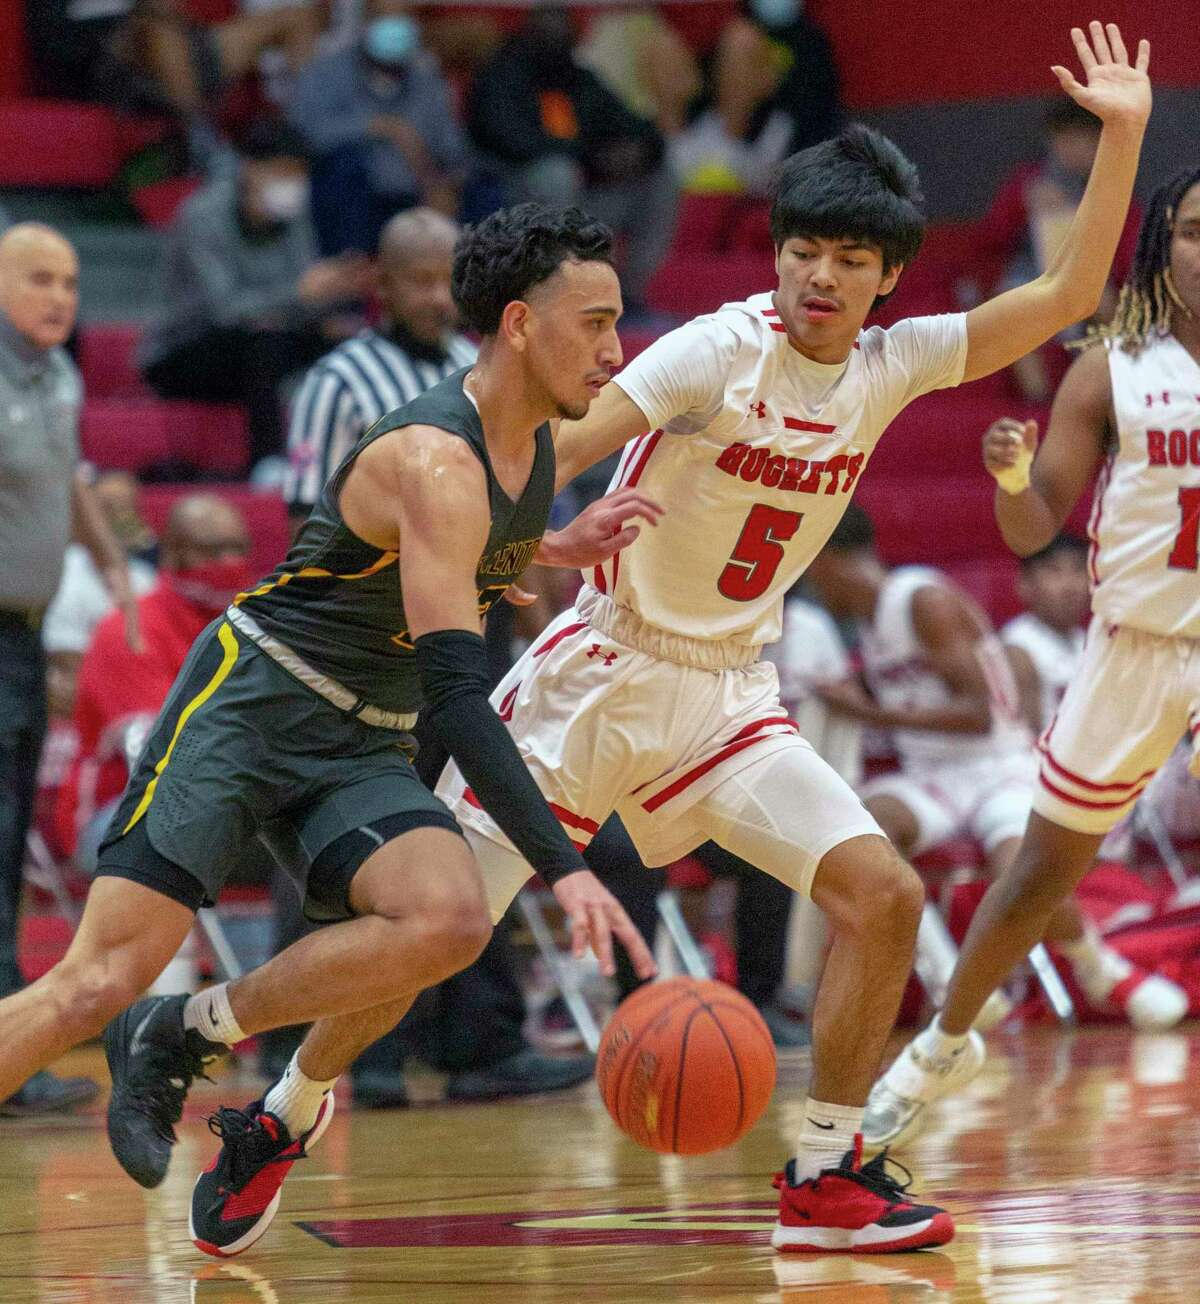 East Central's Jeremiah Brooks drives Tuesday night, Feb. 2, 2021 at Judson High School past Judson's Donavan Gomez during the first half of the Rockets' game against the Hornets.